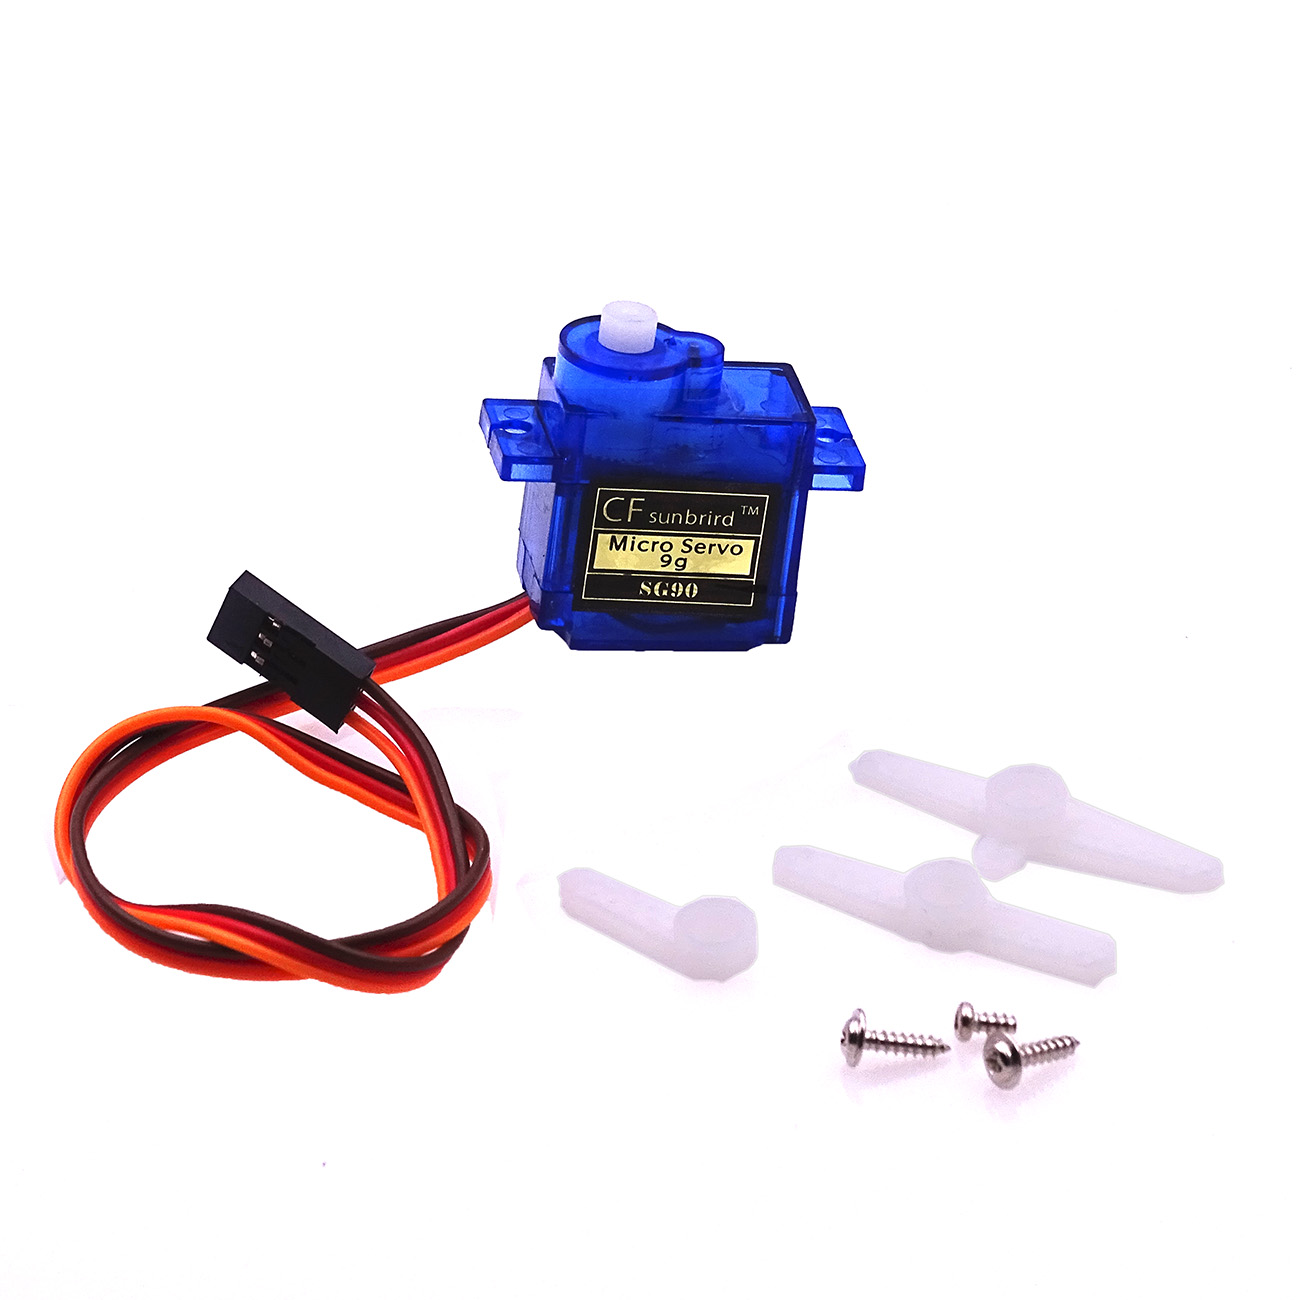 1PCS 9G SG90 Mini Micro Servo For RC Robot Helicopter Airplane Car Boat Blue